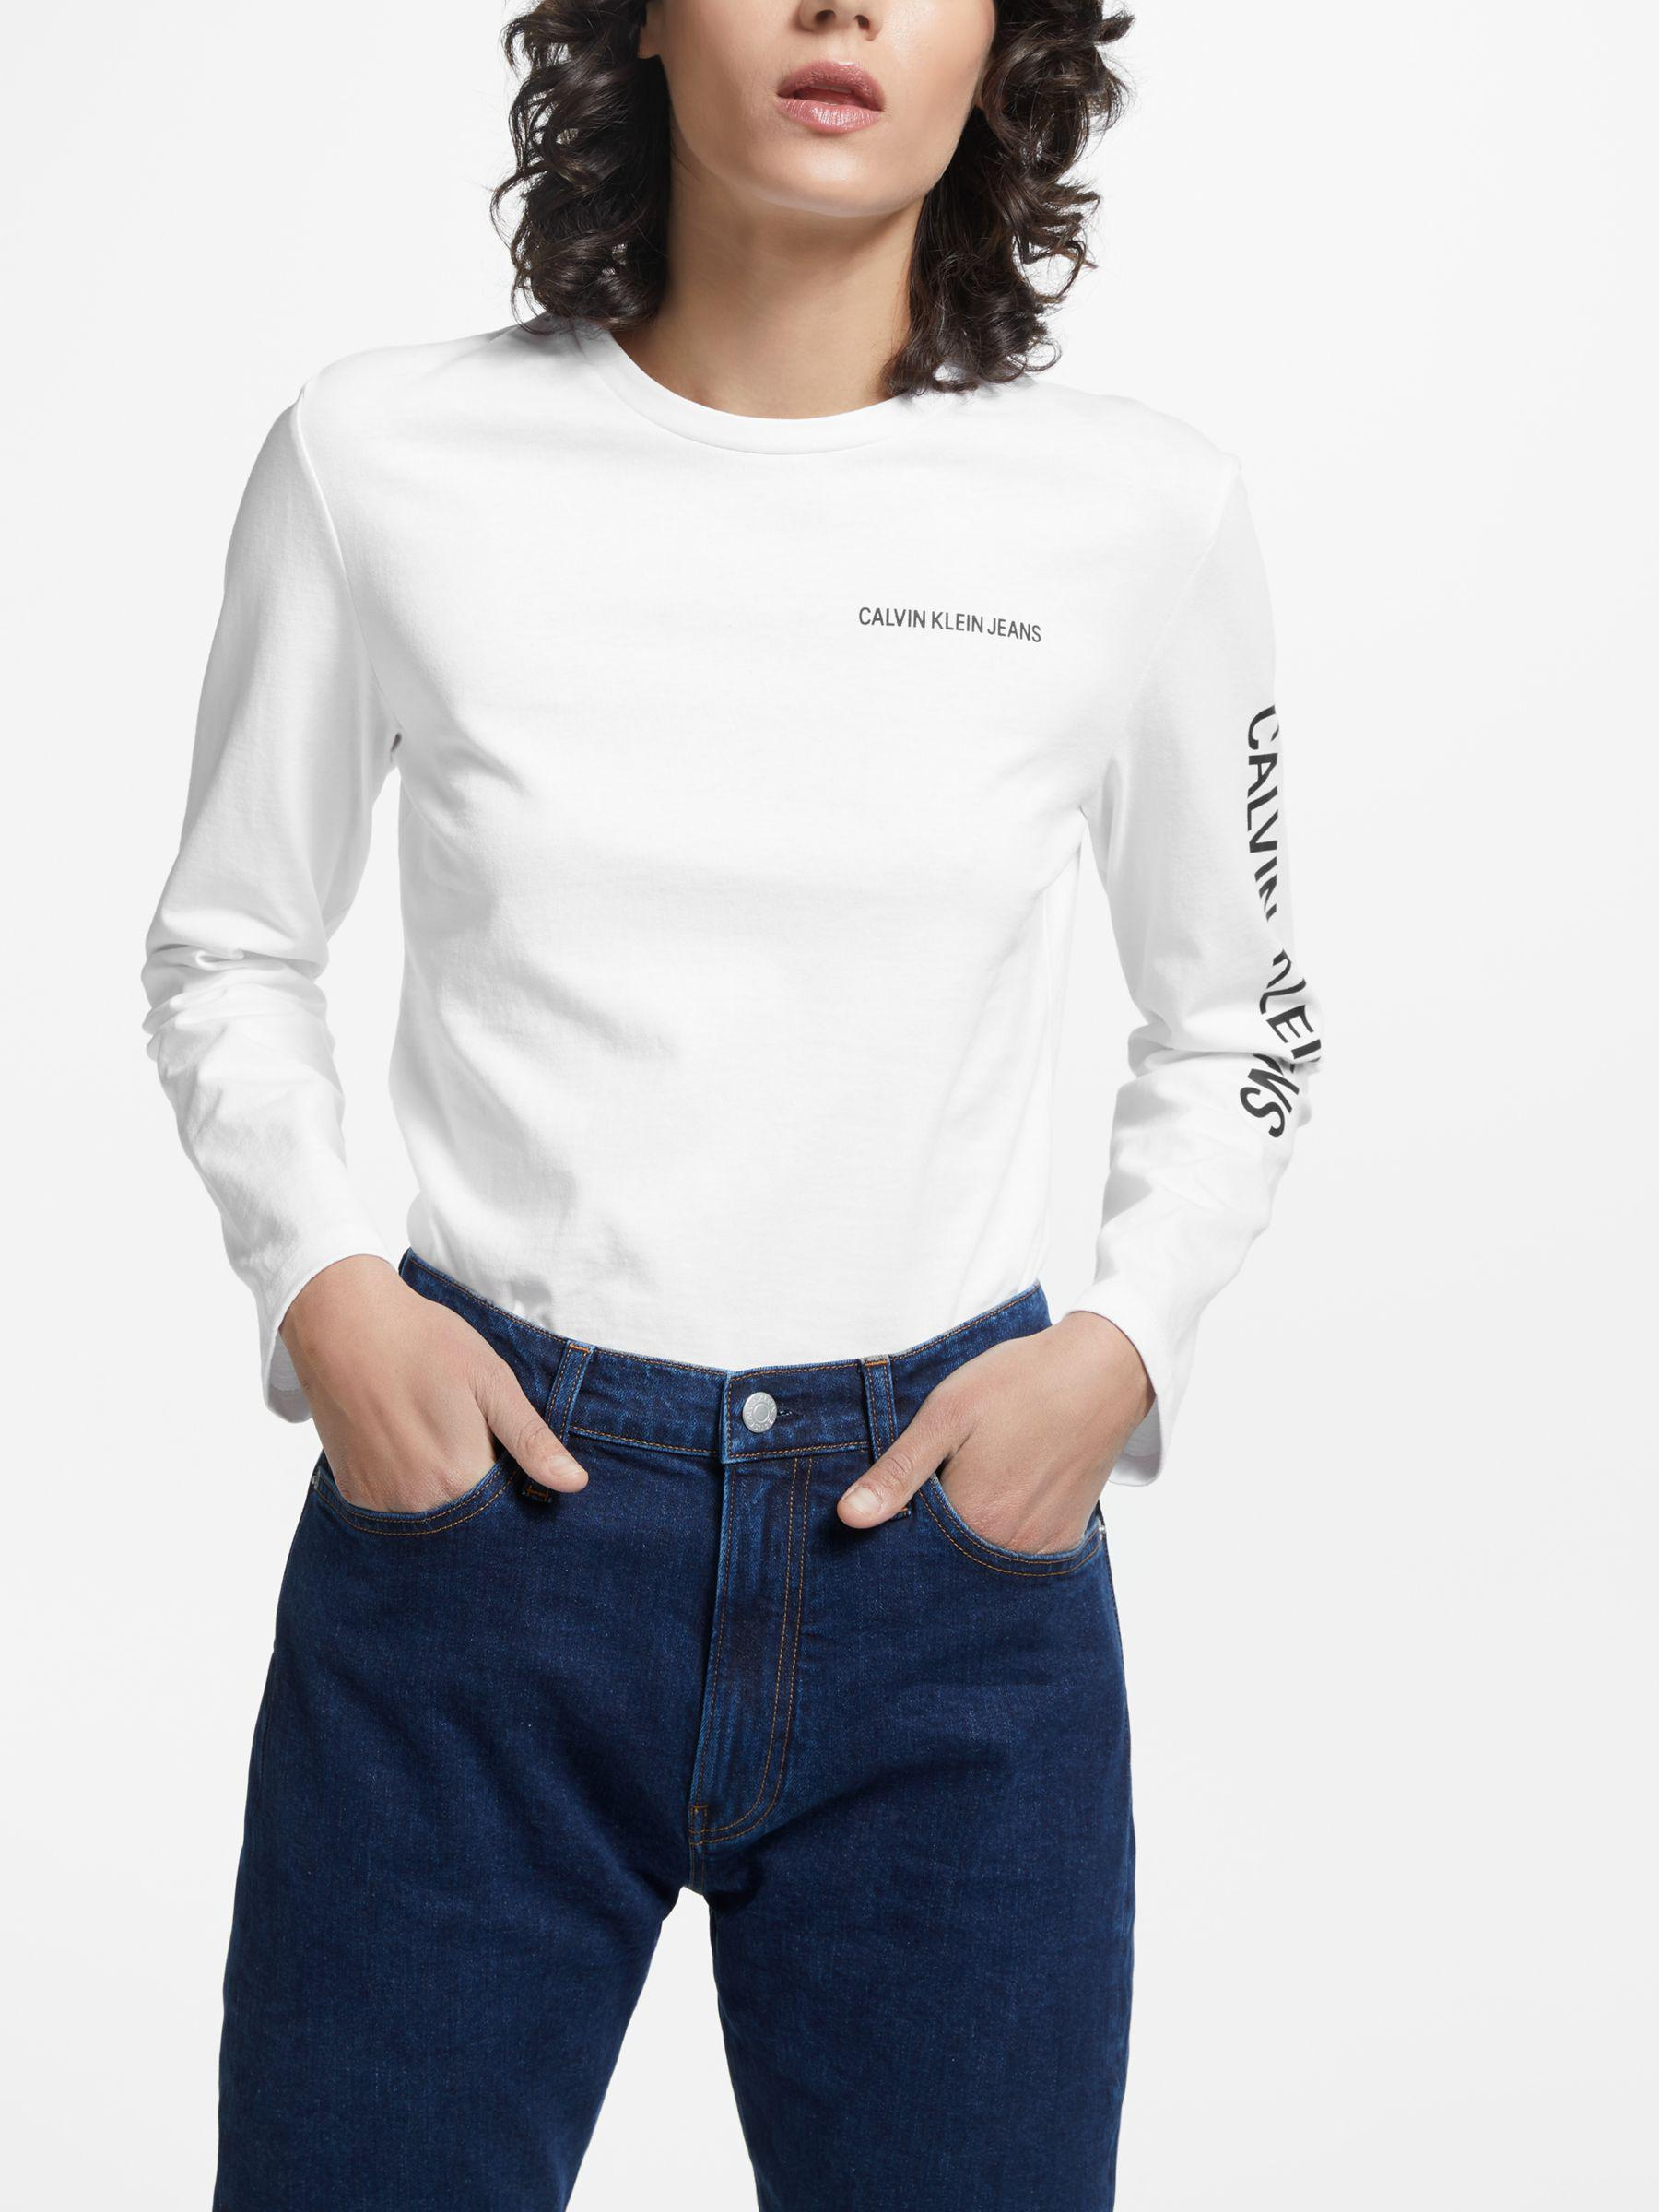 6080ed250a0 Calvin Klein Institutional Relaxed Fit Long Sleeve in White - Lyst